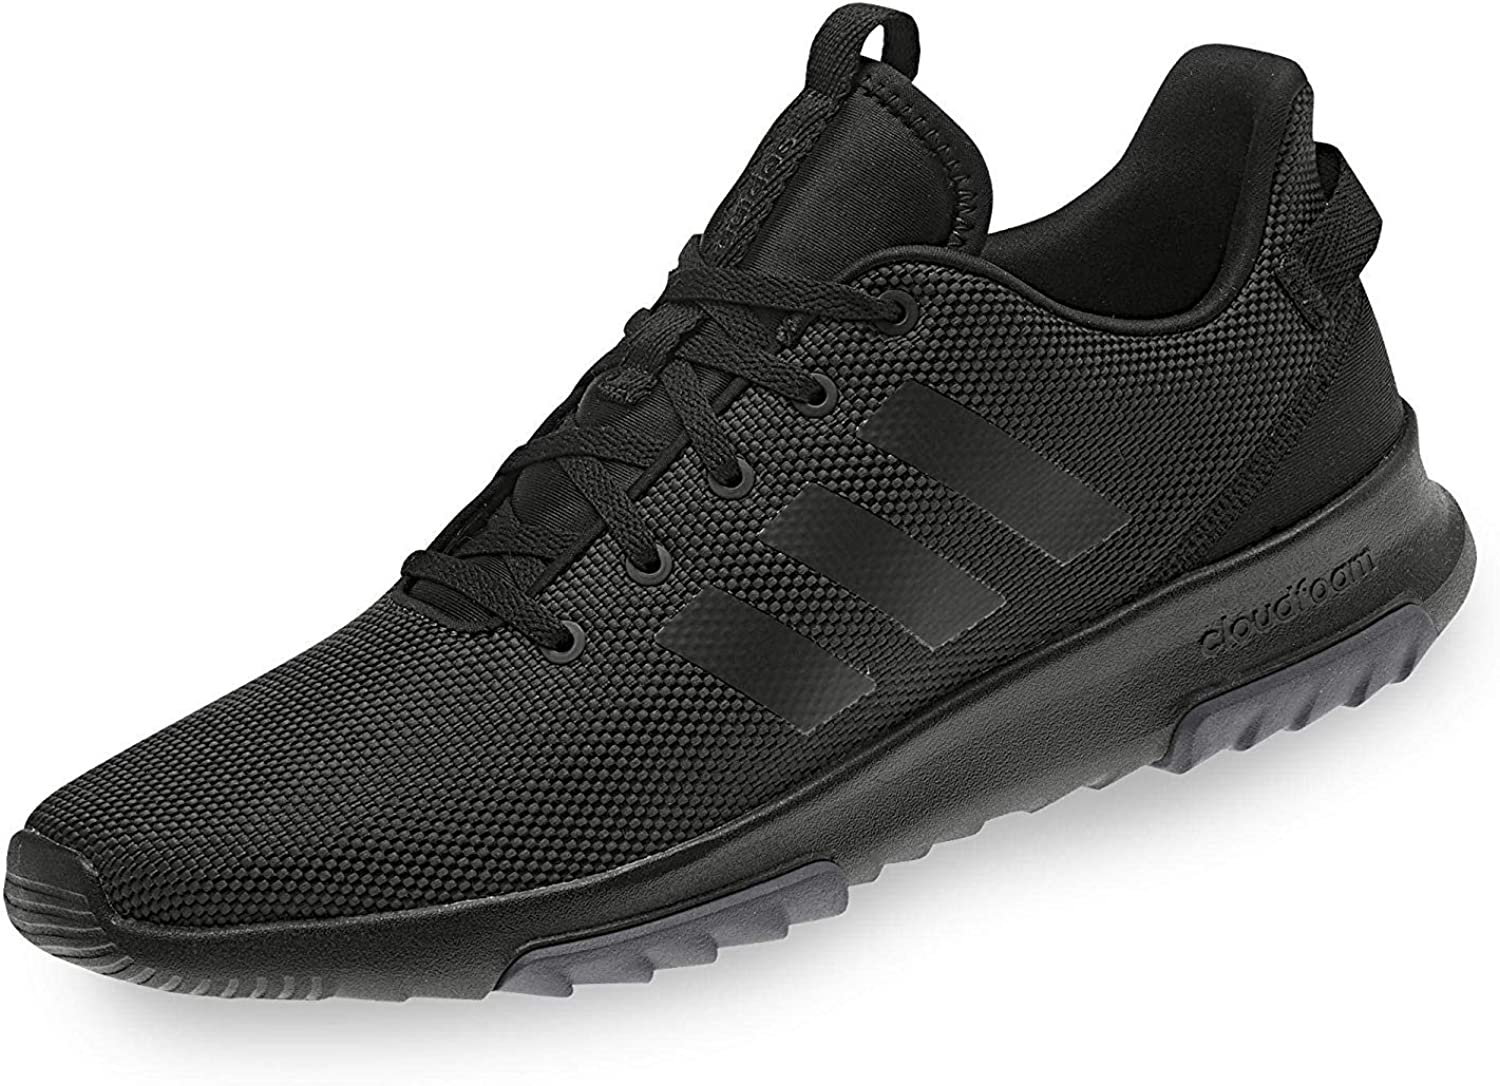 Adidas Neo Men shoes Cloudfoam Racer TR Running Training